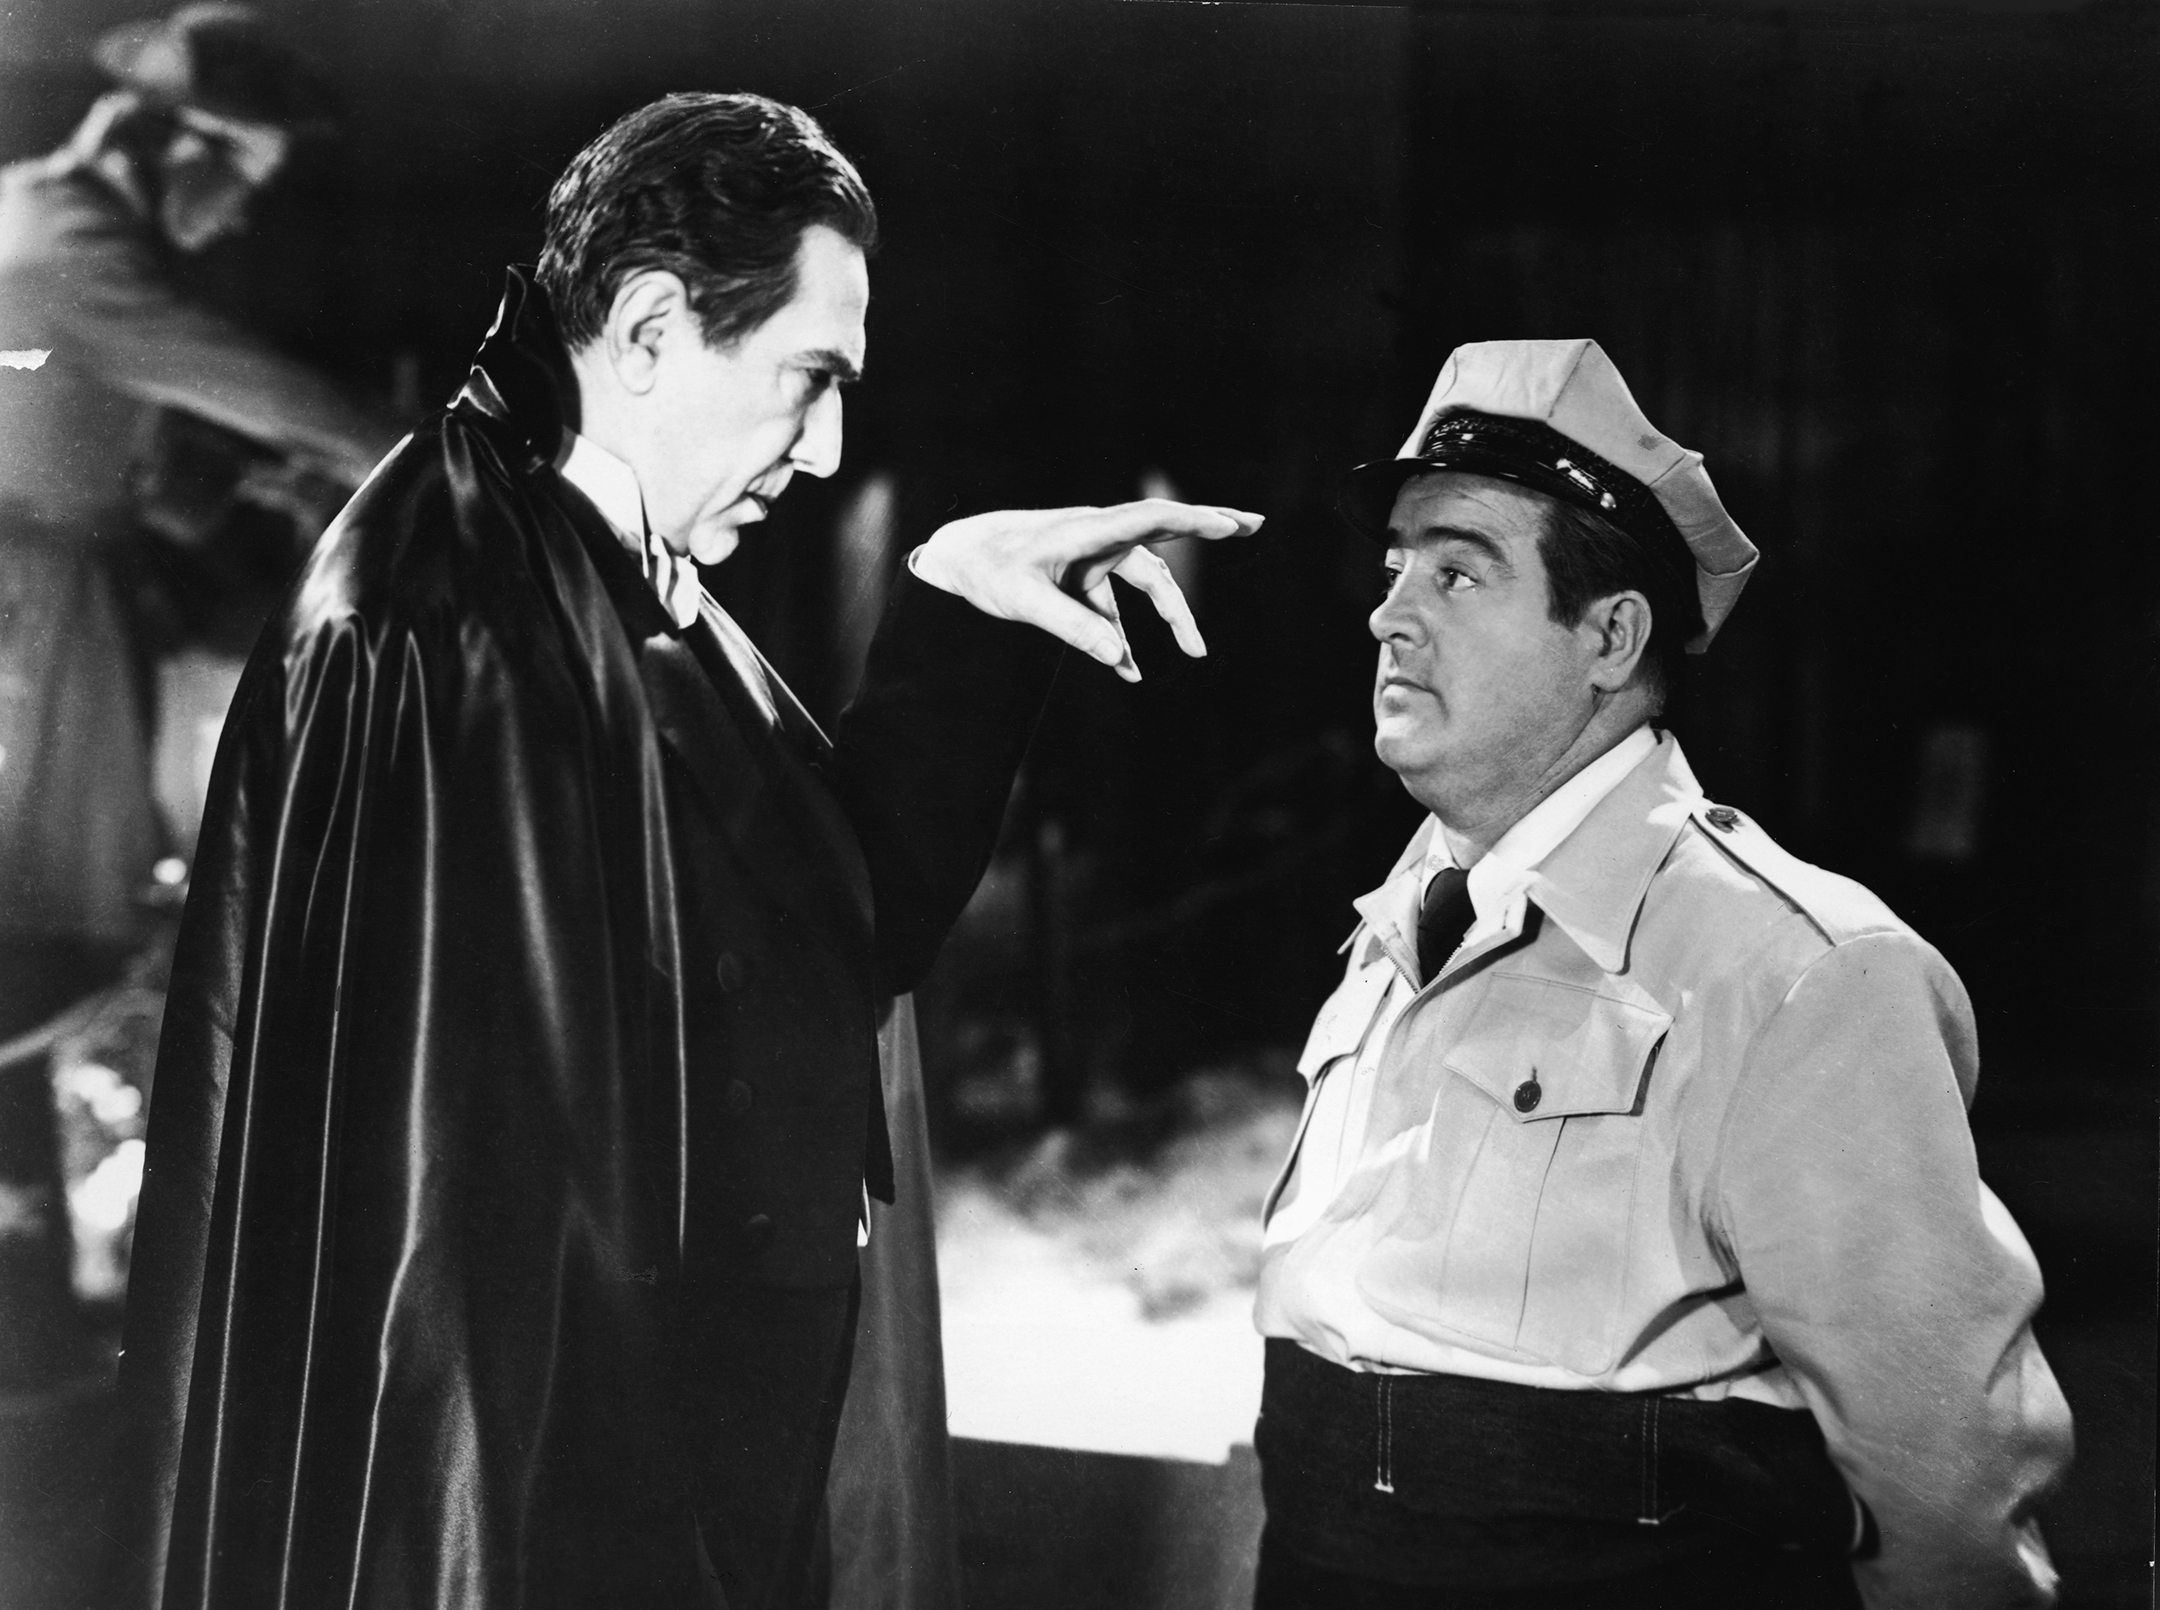 Black and white still from the movie Abbott & Costello Meet Frankenstein showing Dracula staring into the eyes of Lou Costello